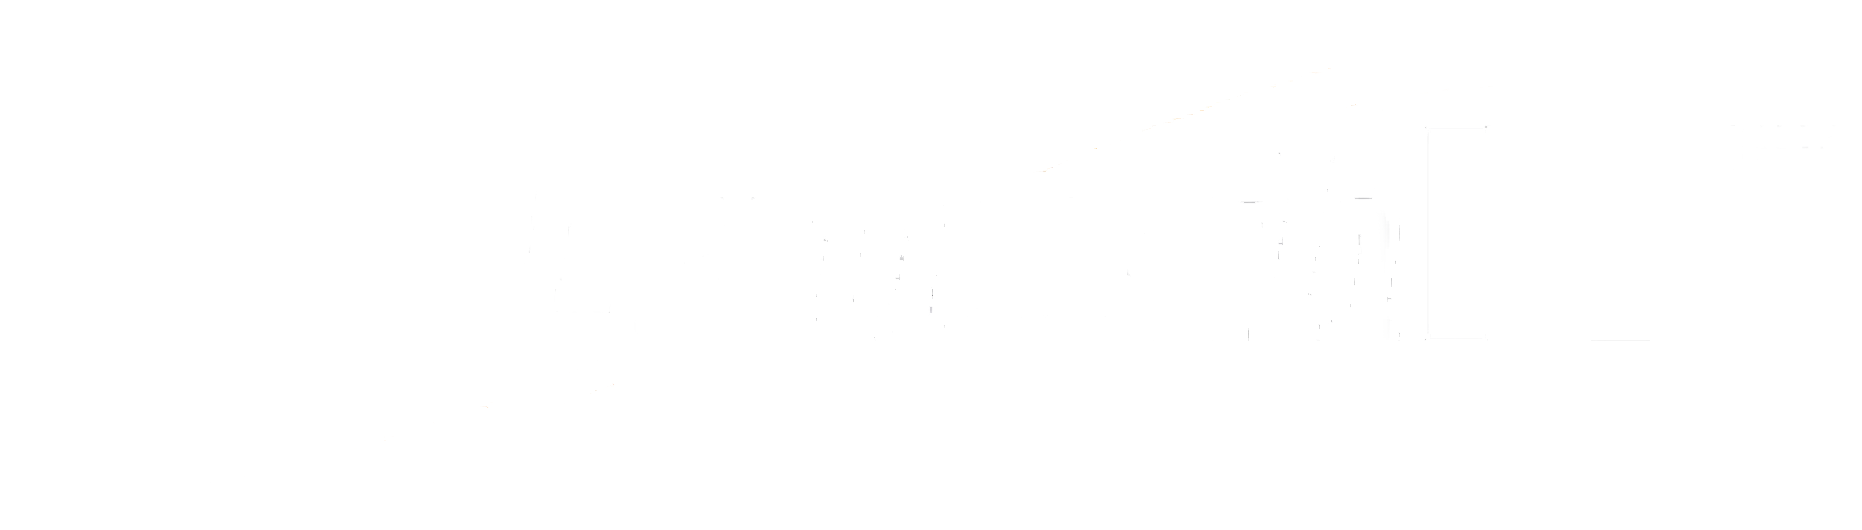 https://secureservercdn.net/198.71.233.67/yhm.d04.myftpupload.com/wp-content/uploads/2020/07/LaunchIT_logo-1.png?time=1620771840